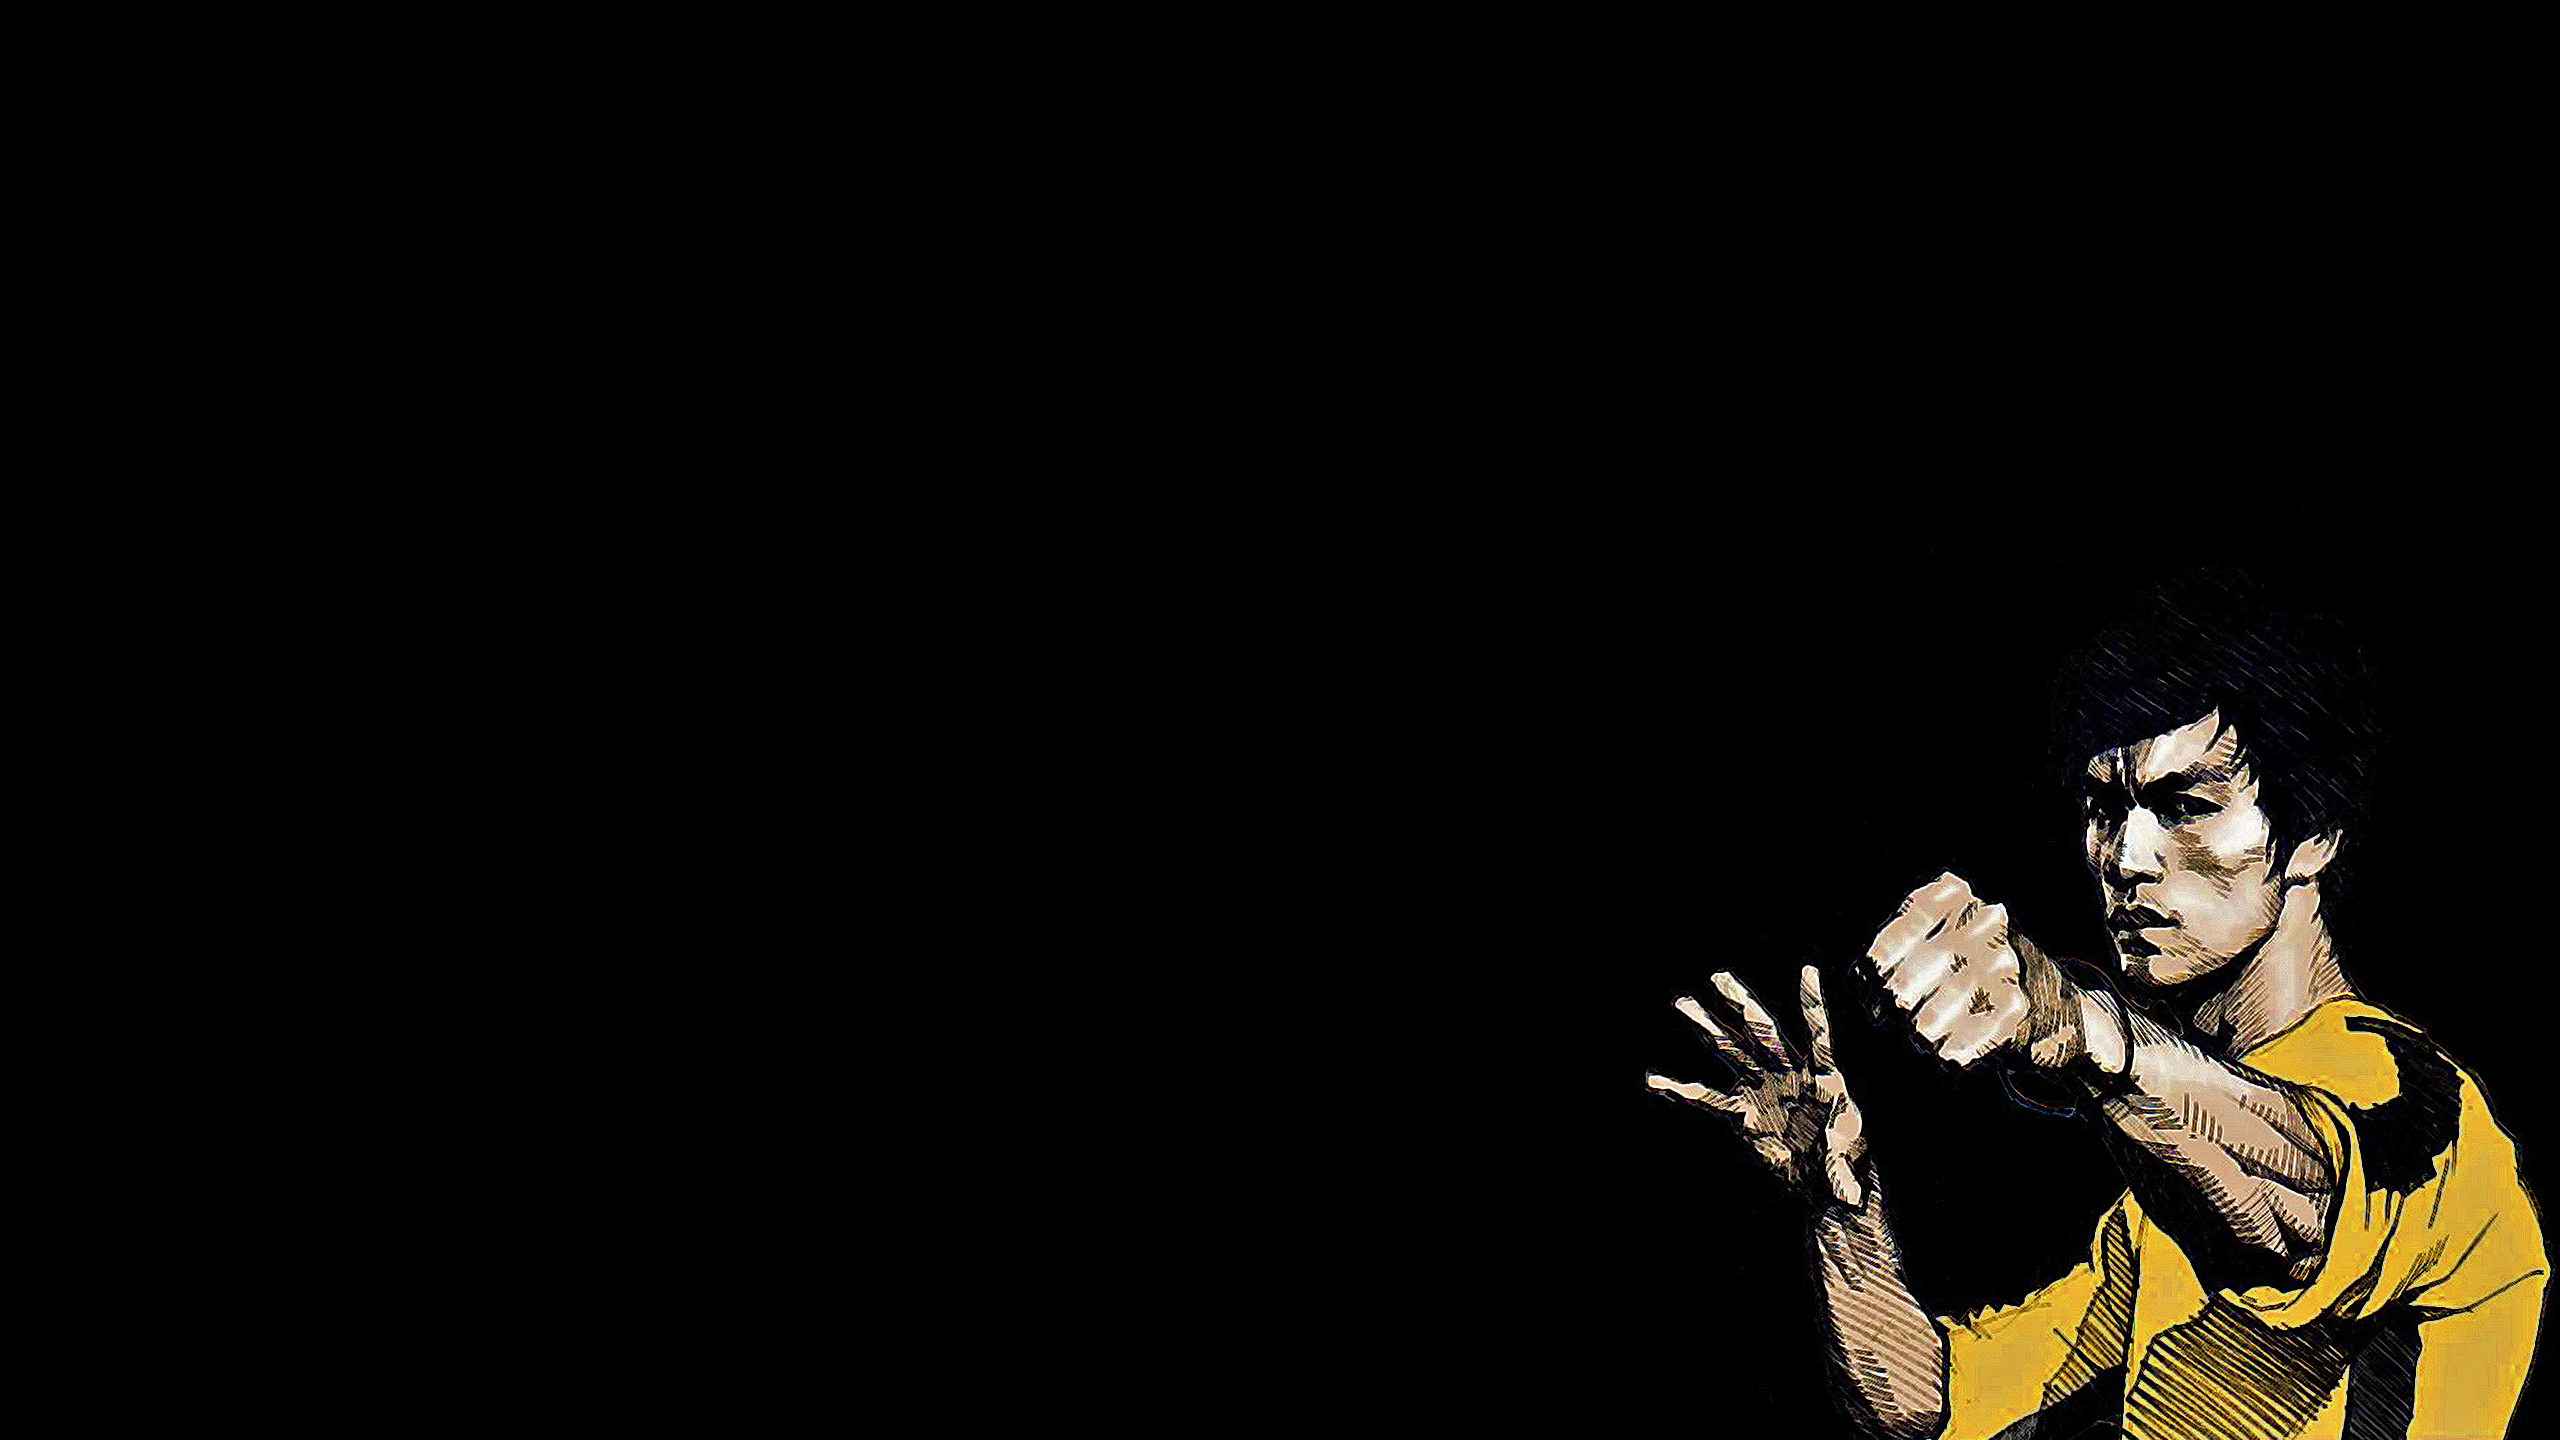 Bruce lee black background HD Wallpaper